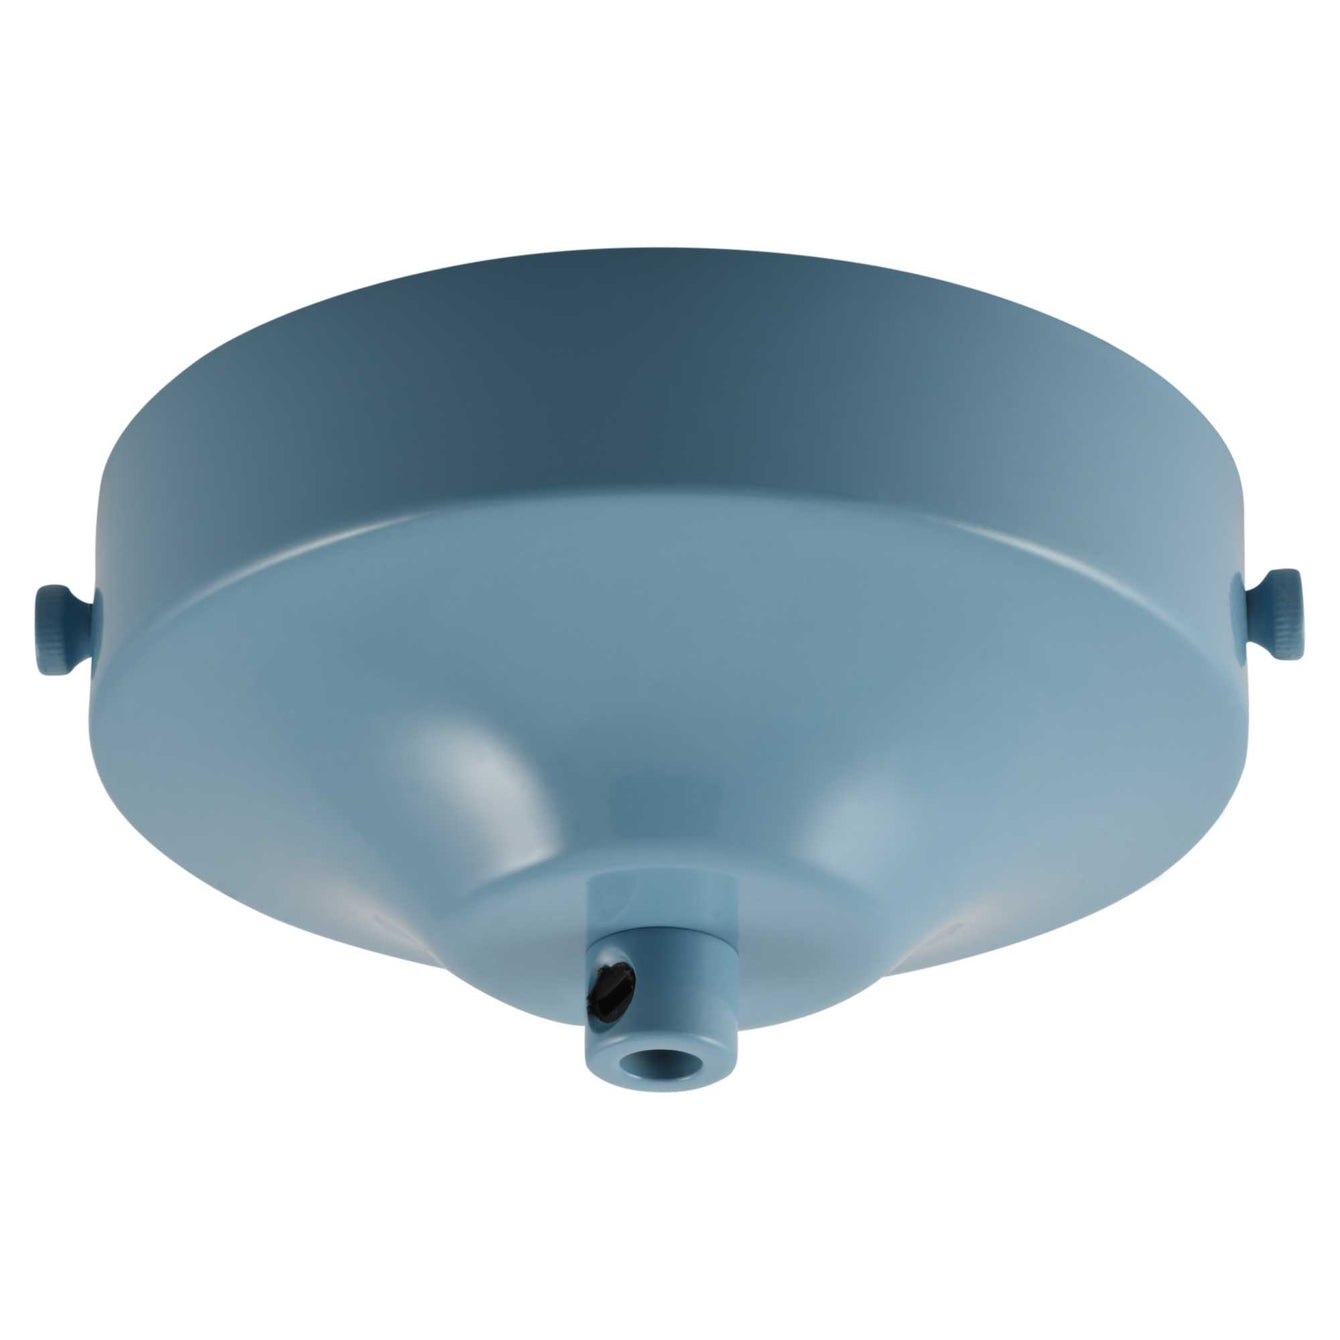 ElekTek 100mm Diameter Convex Ceiling Rose with Strap Bracket and Cord Grip Metallic Finishes Powder Coated Colours - Buy It Better